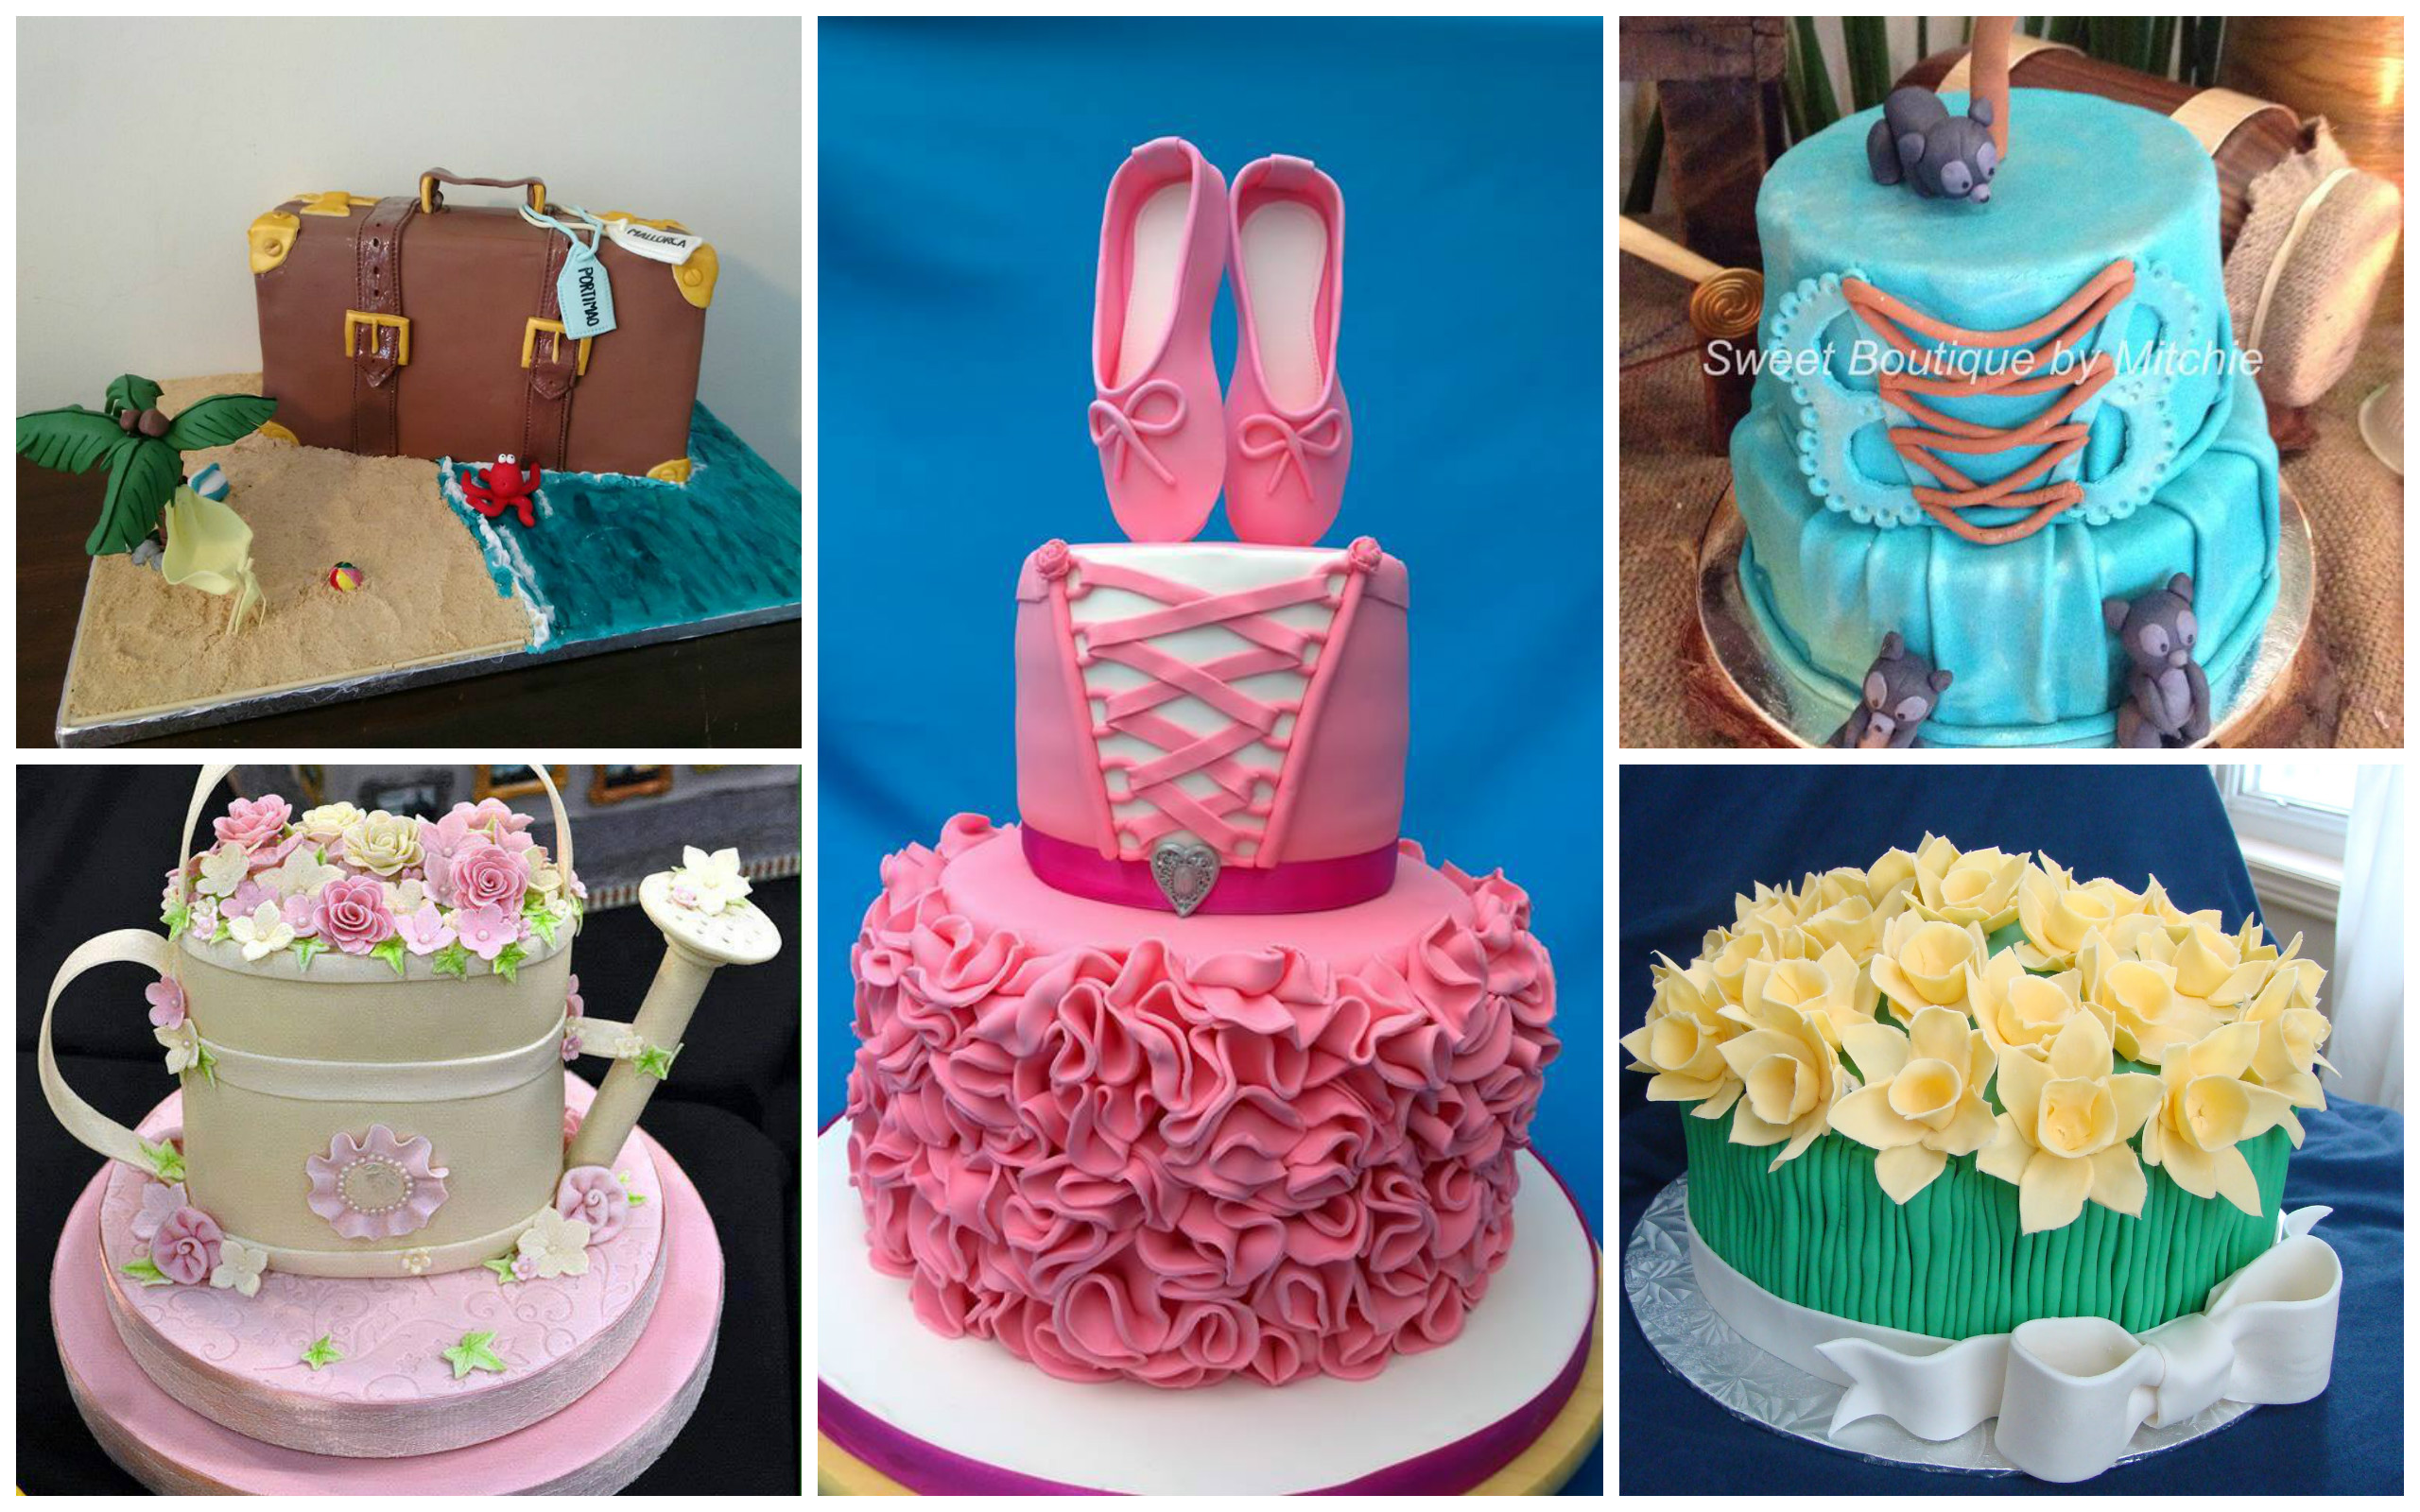 Amazing Cake Ideas  Award-Winning Cake Decorators